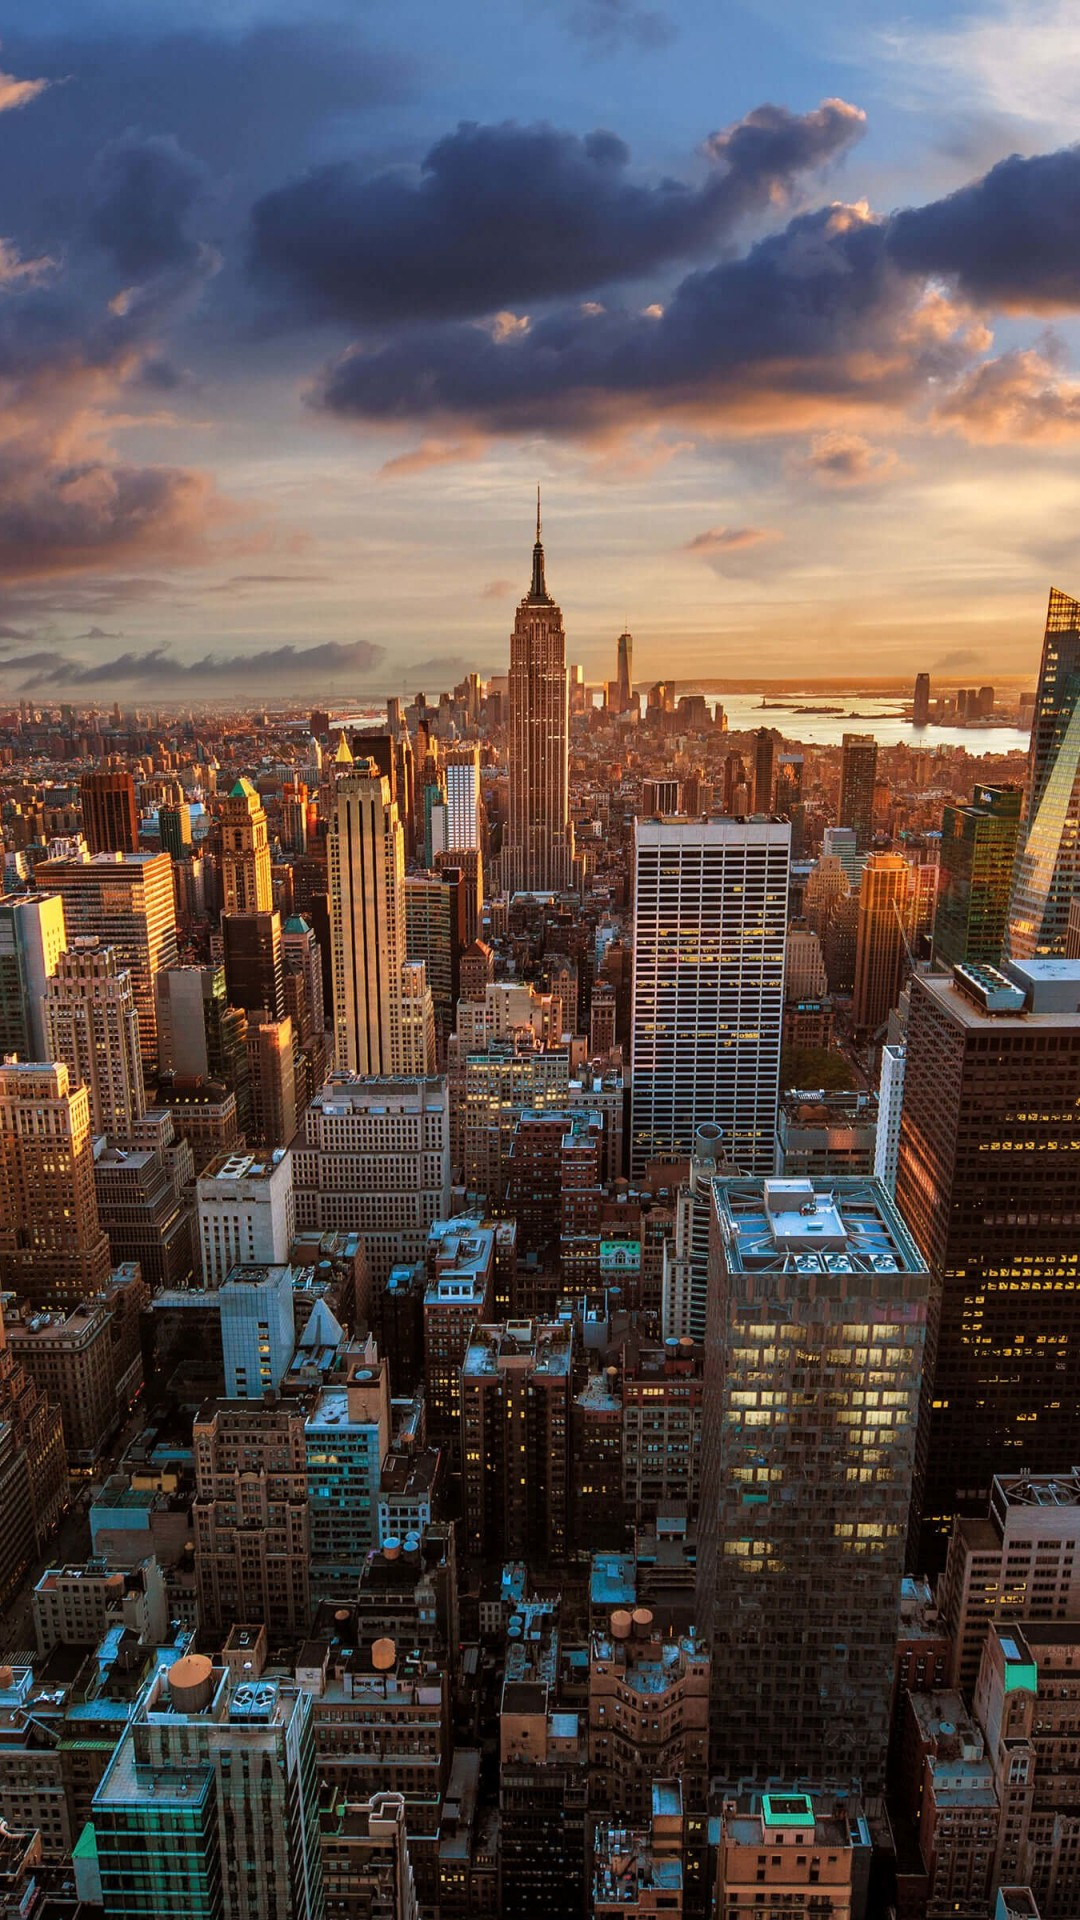 New York City Skyline At Sunset Wallpaper for HTC One